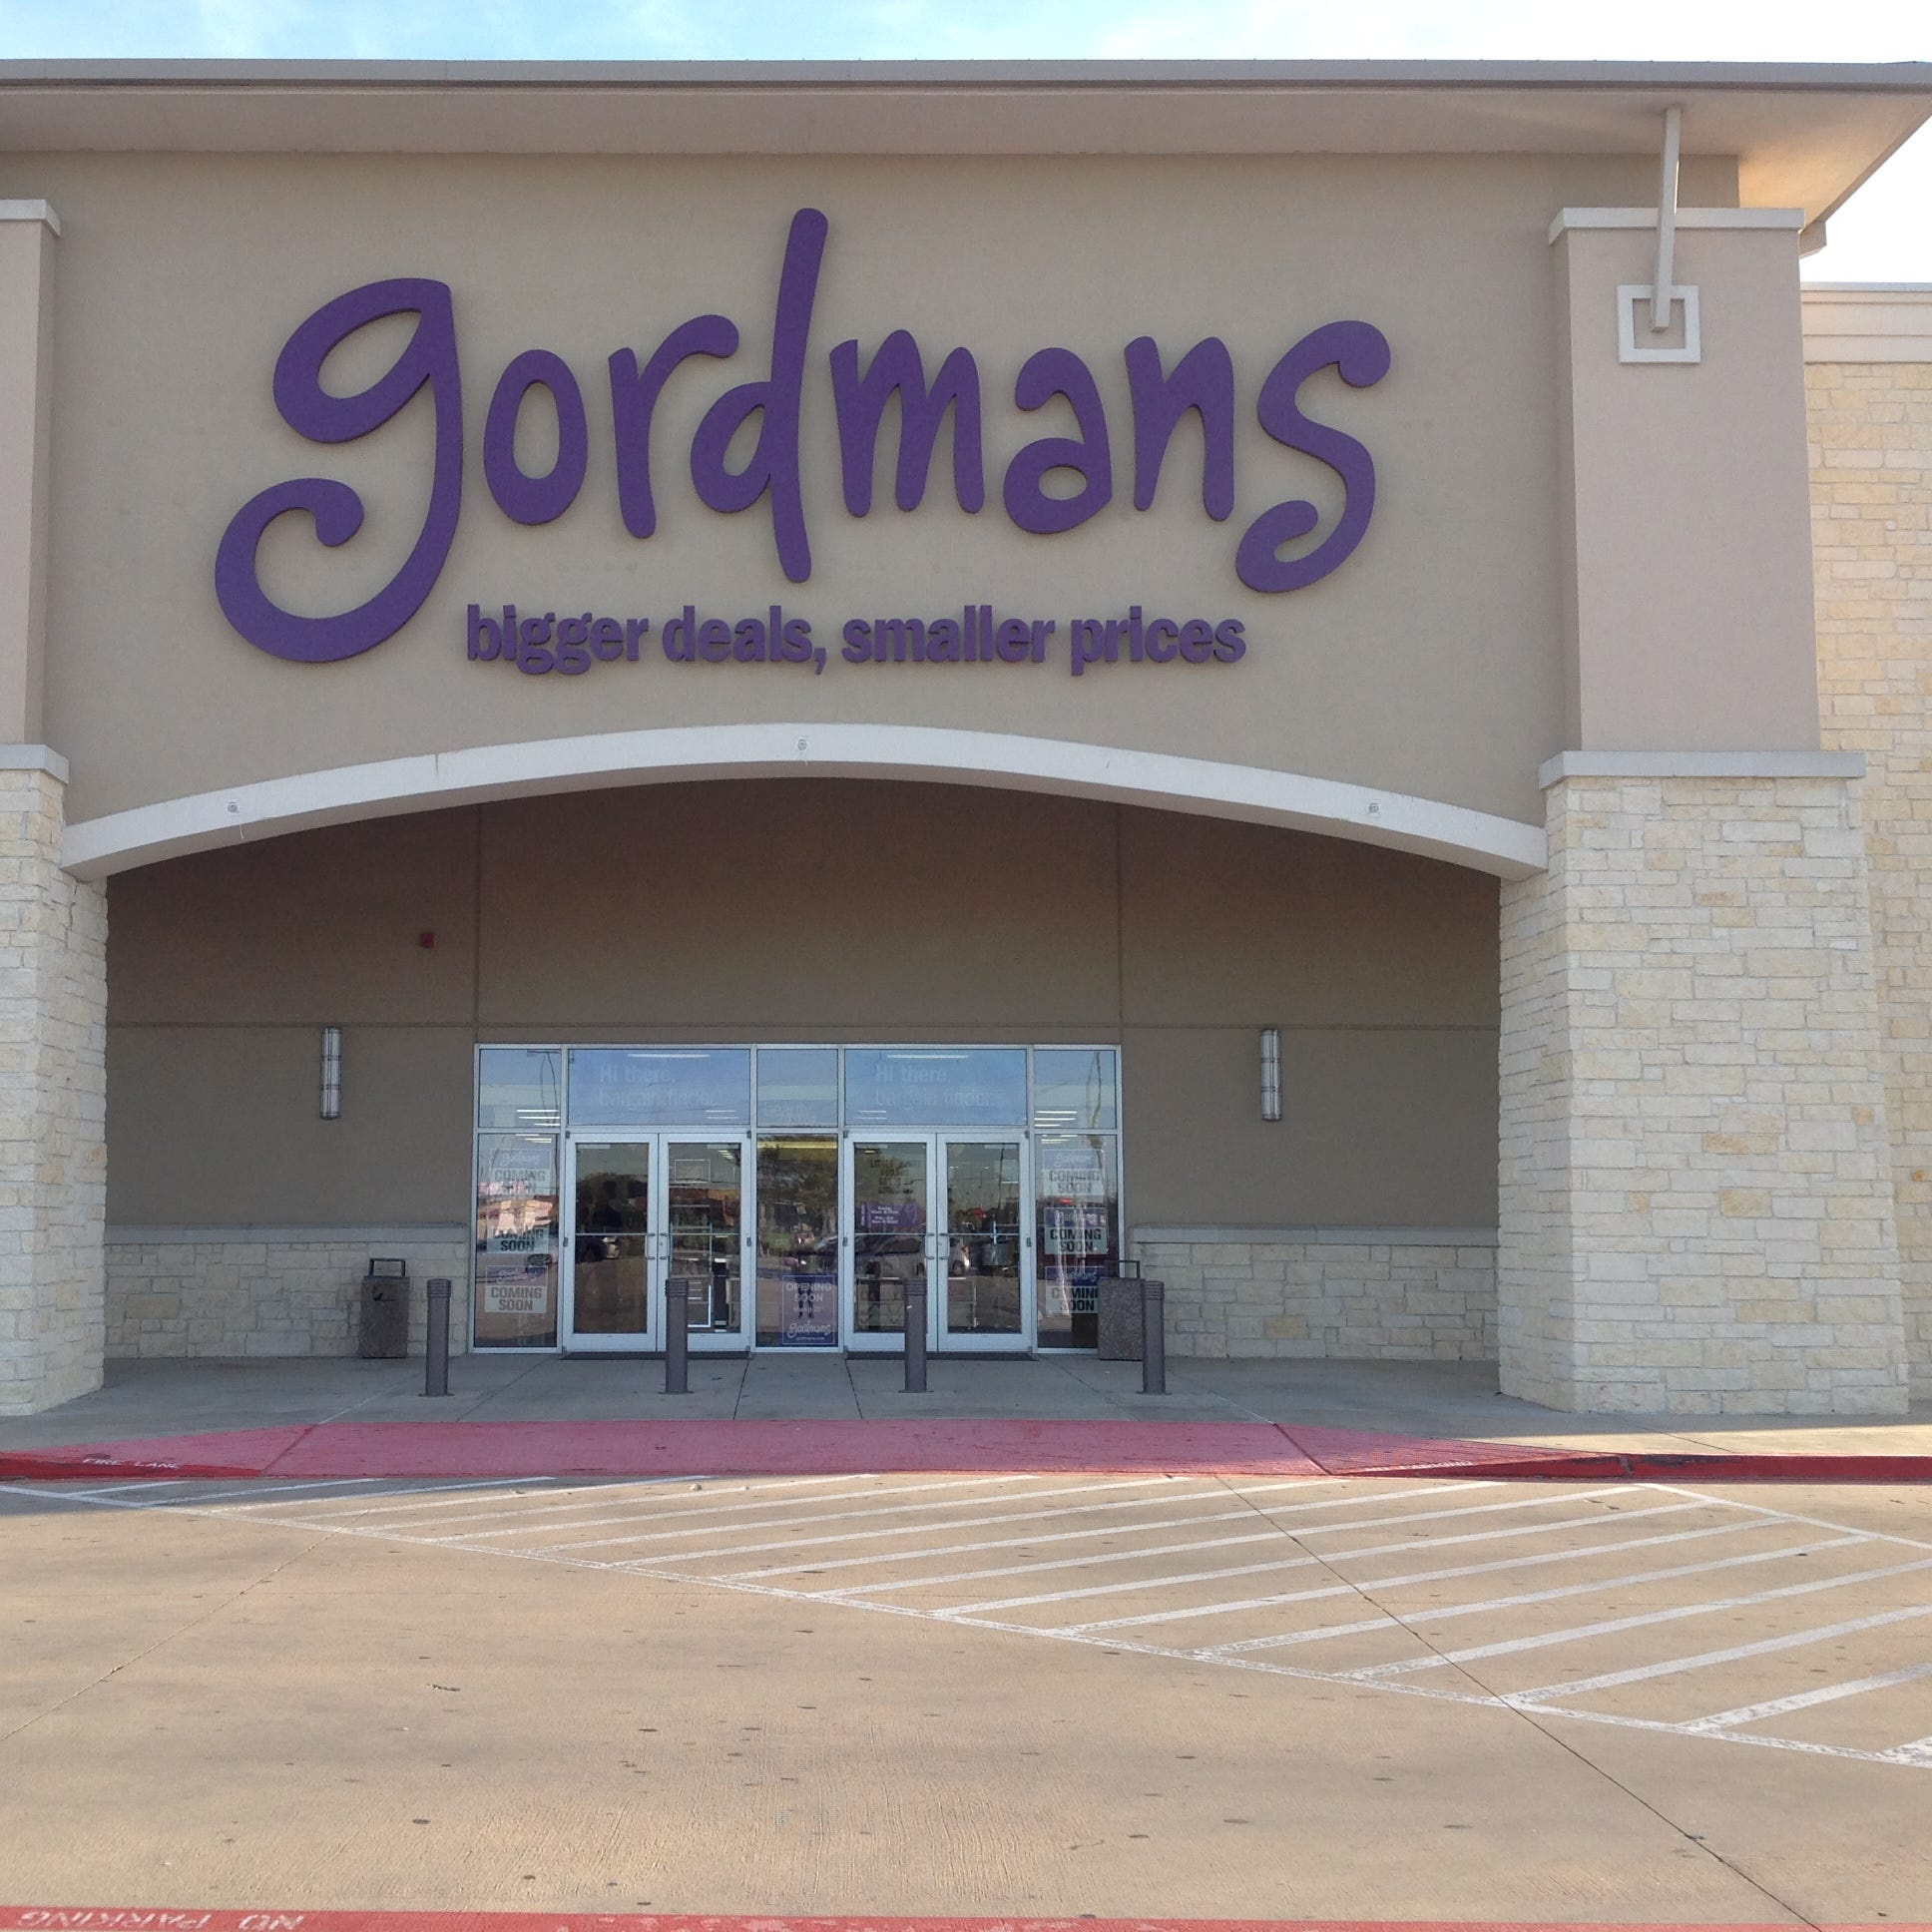 With discounted brand-name merchandise, Gordmans will bring a different brand of retail to Mukwonago